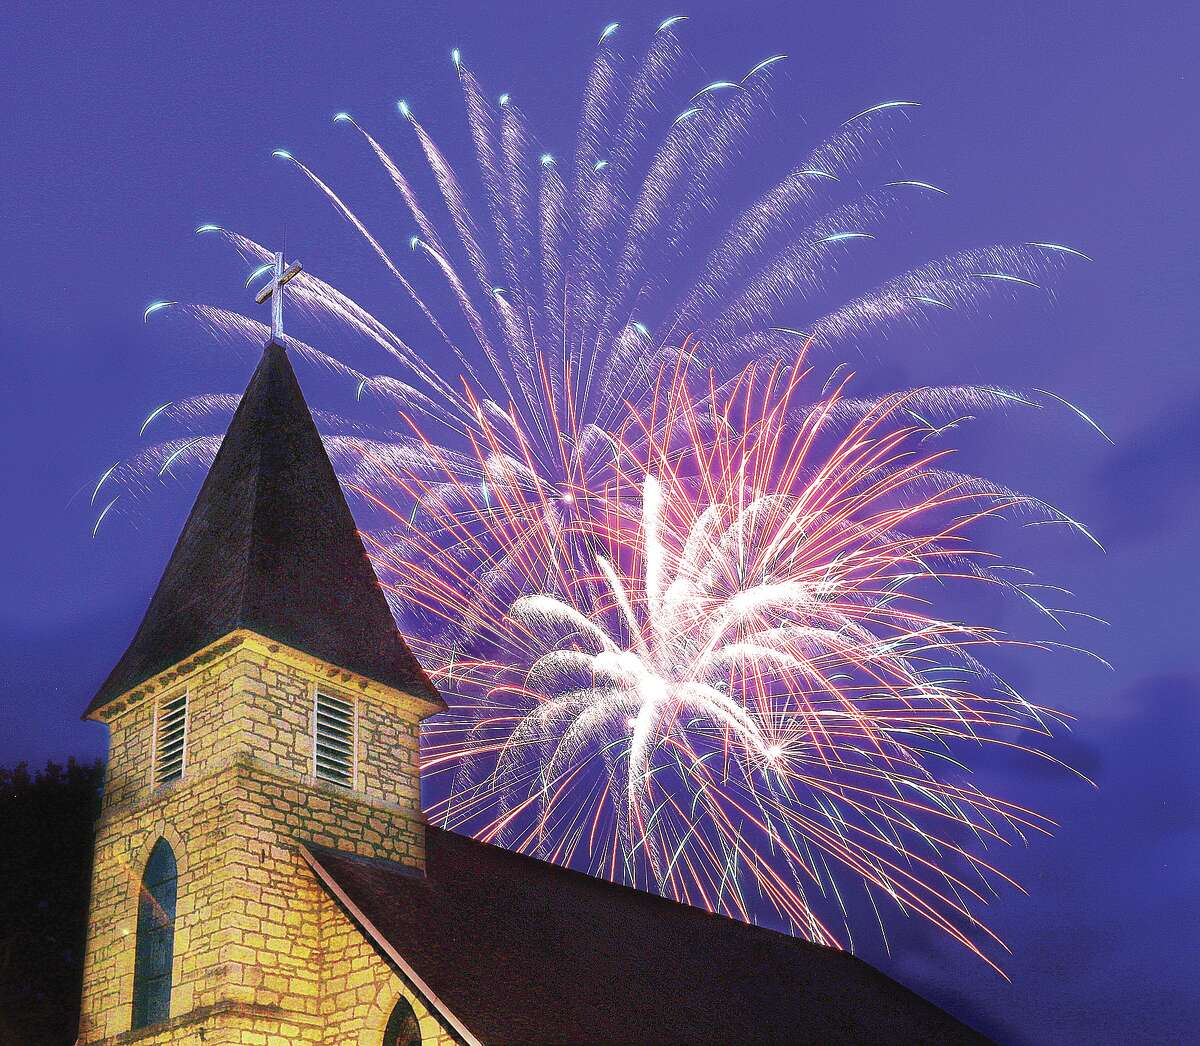 Fireworks explode on the Mississippi River in Grafton. Free fireworks shows are planned simultaneously in Grafton and Alton on Thursday nights this summer as part of efforts by the Great Rivers & Routes Tourism Bureau of Southwest Illinois to bolster local businesses.